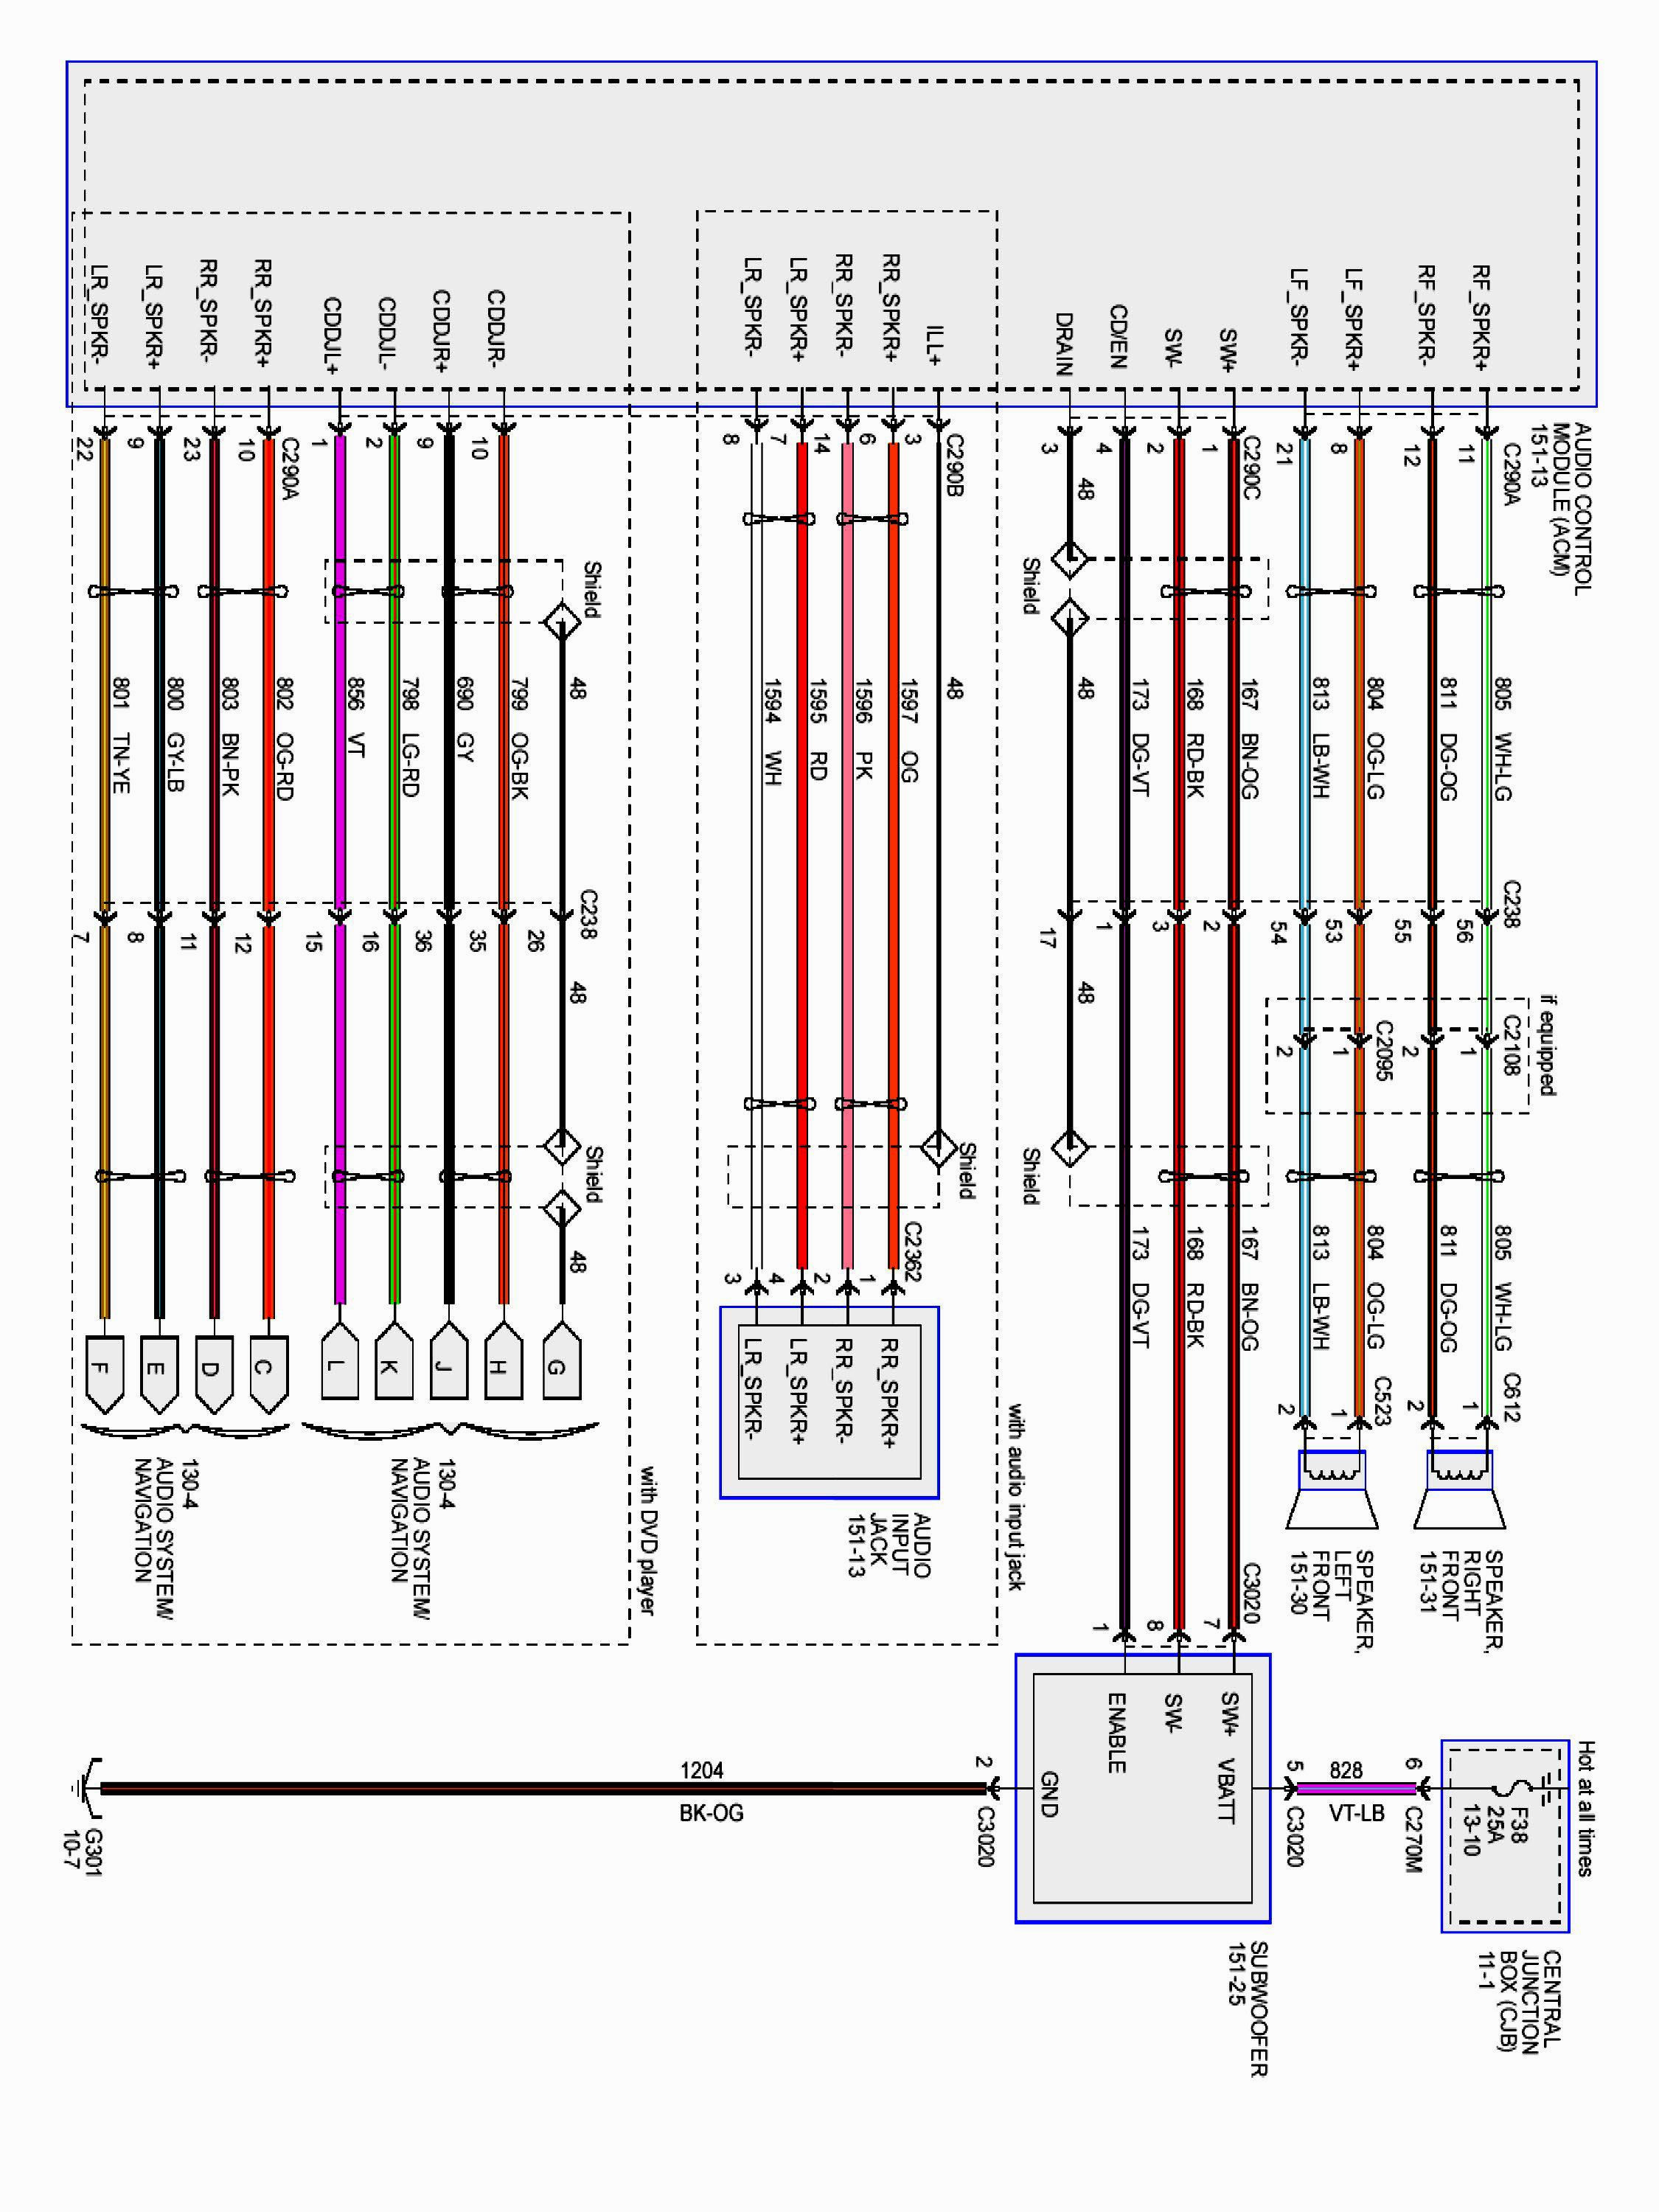 2005 ford f150 trailer wiring diagram Collection-Ford F150 Trailer Wiring Harness Diagram With Wire Saleexpert Me For 18-o